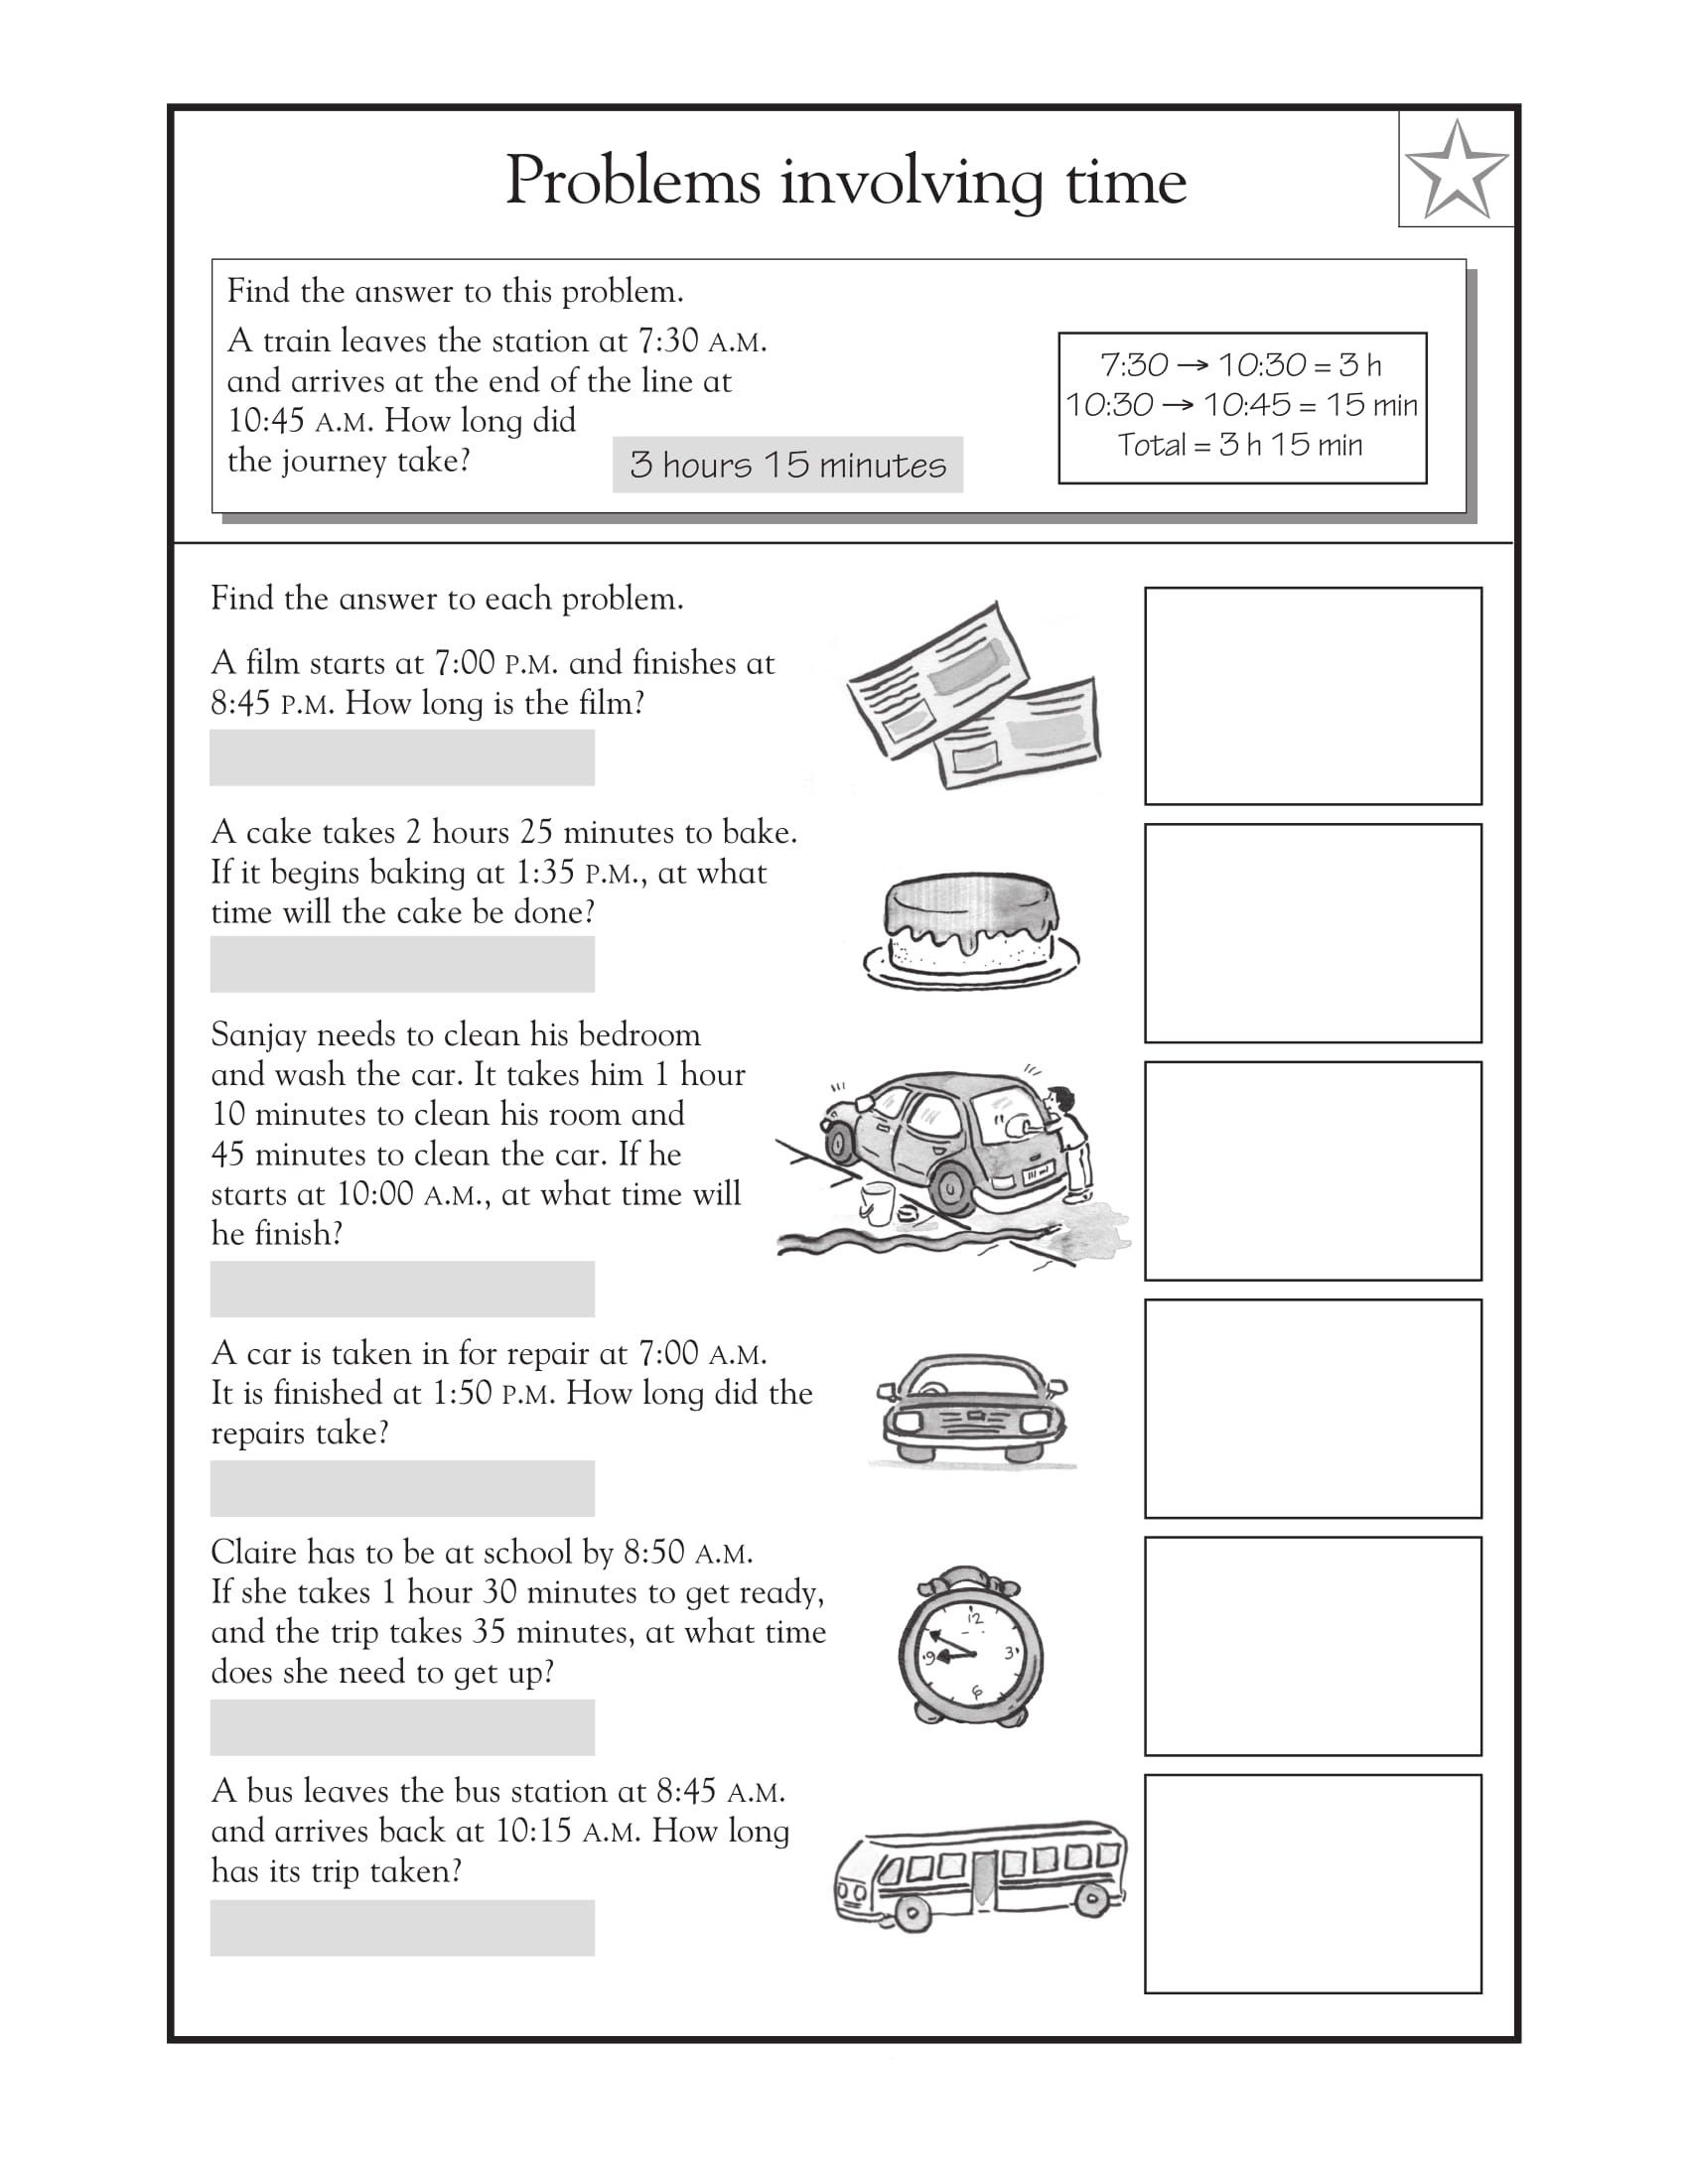 3rd Grade Math Word Problems Best Coloring Pages For Kids In 2020 Problem Solving Worksheet Life Skills Lessons Math Word Problems